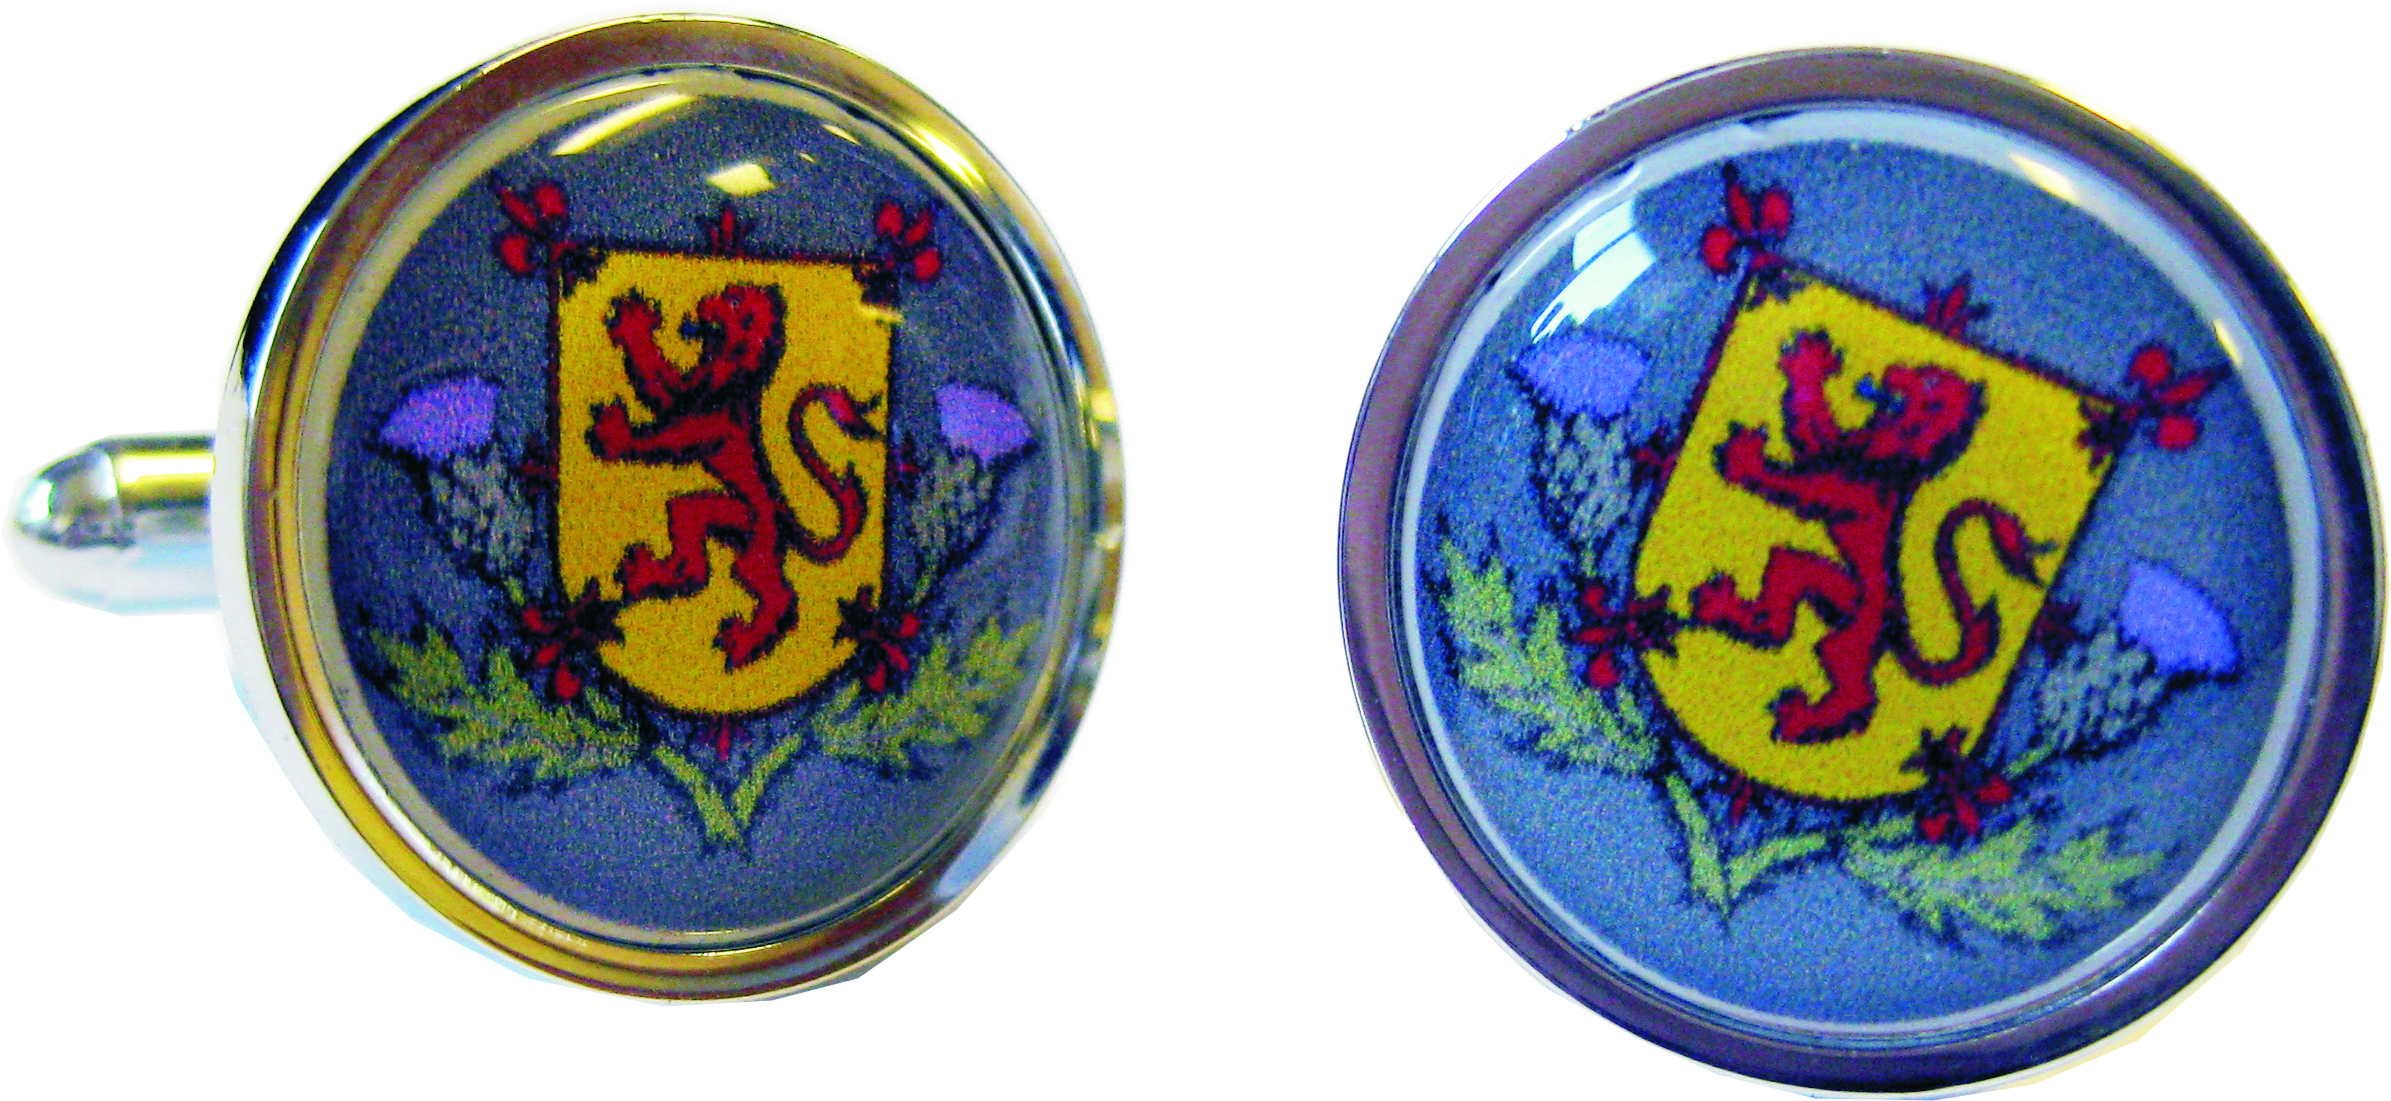 "Lion of Scotland and Thistle Nickel Plated Cufflinks in Snap Hinged Box 2.5cm dia (1"")"